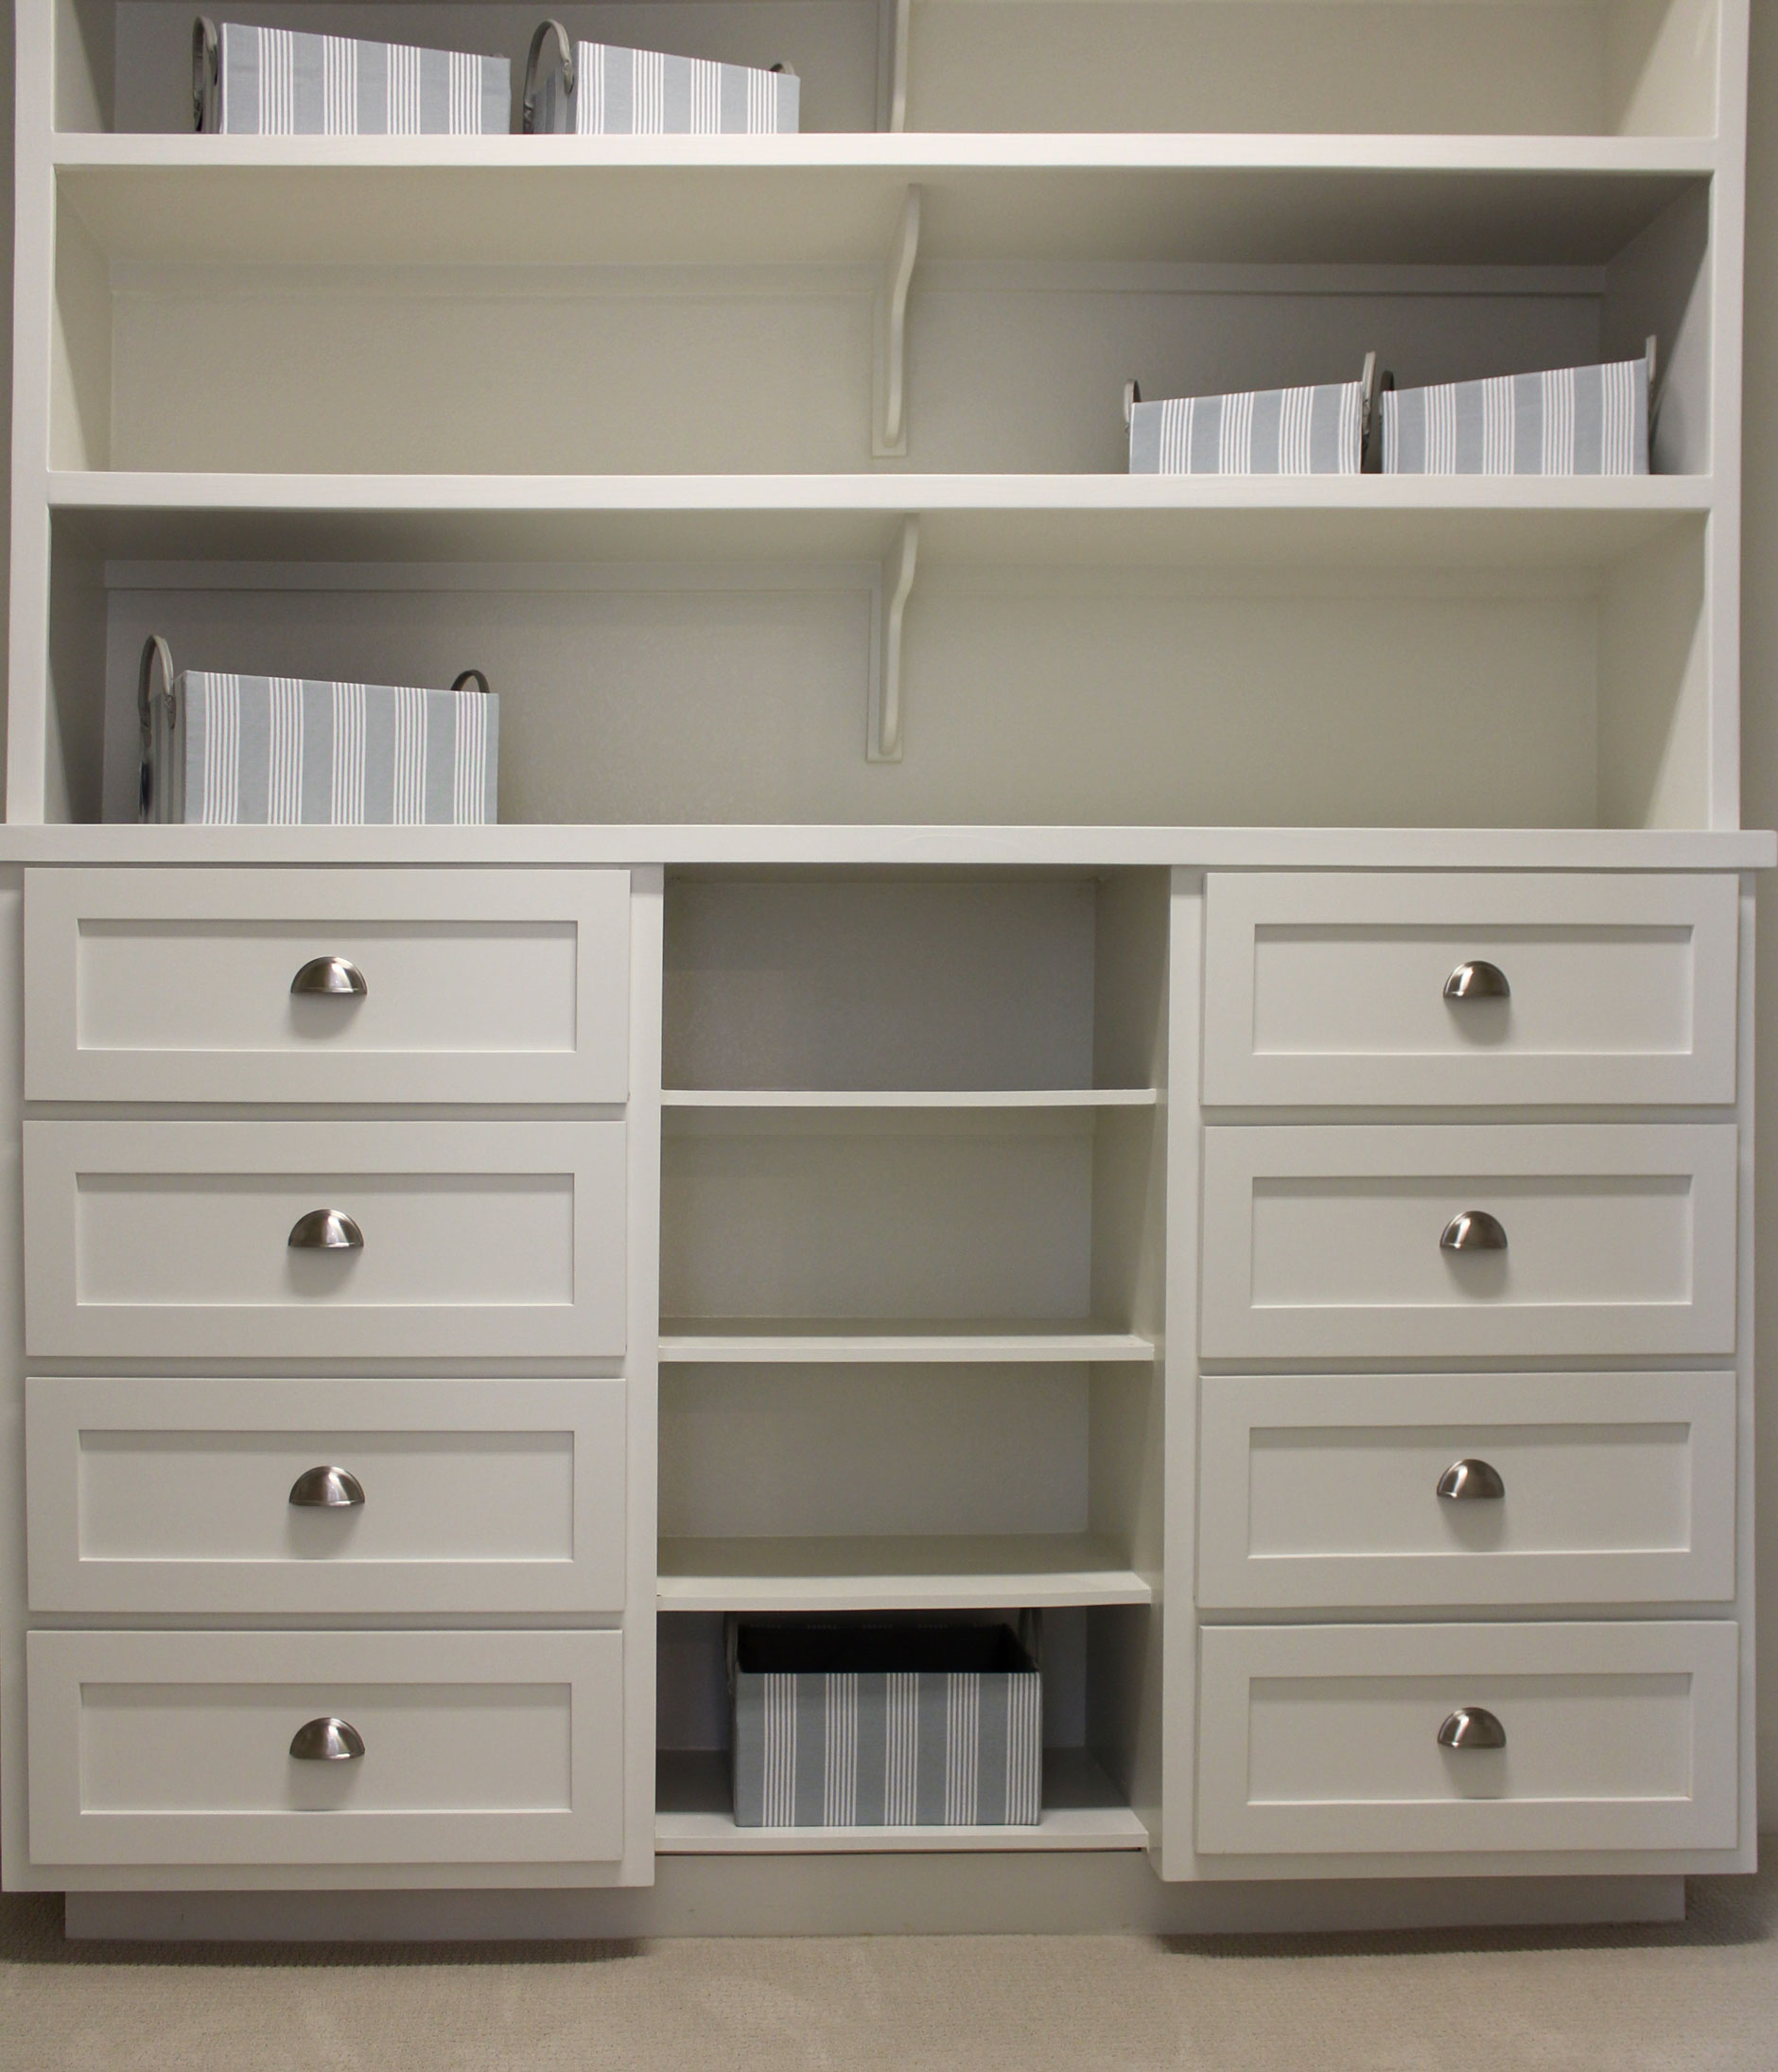 organizers space drawers storage full in cabinet closet size layout of large garage wall close mounted design